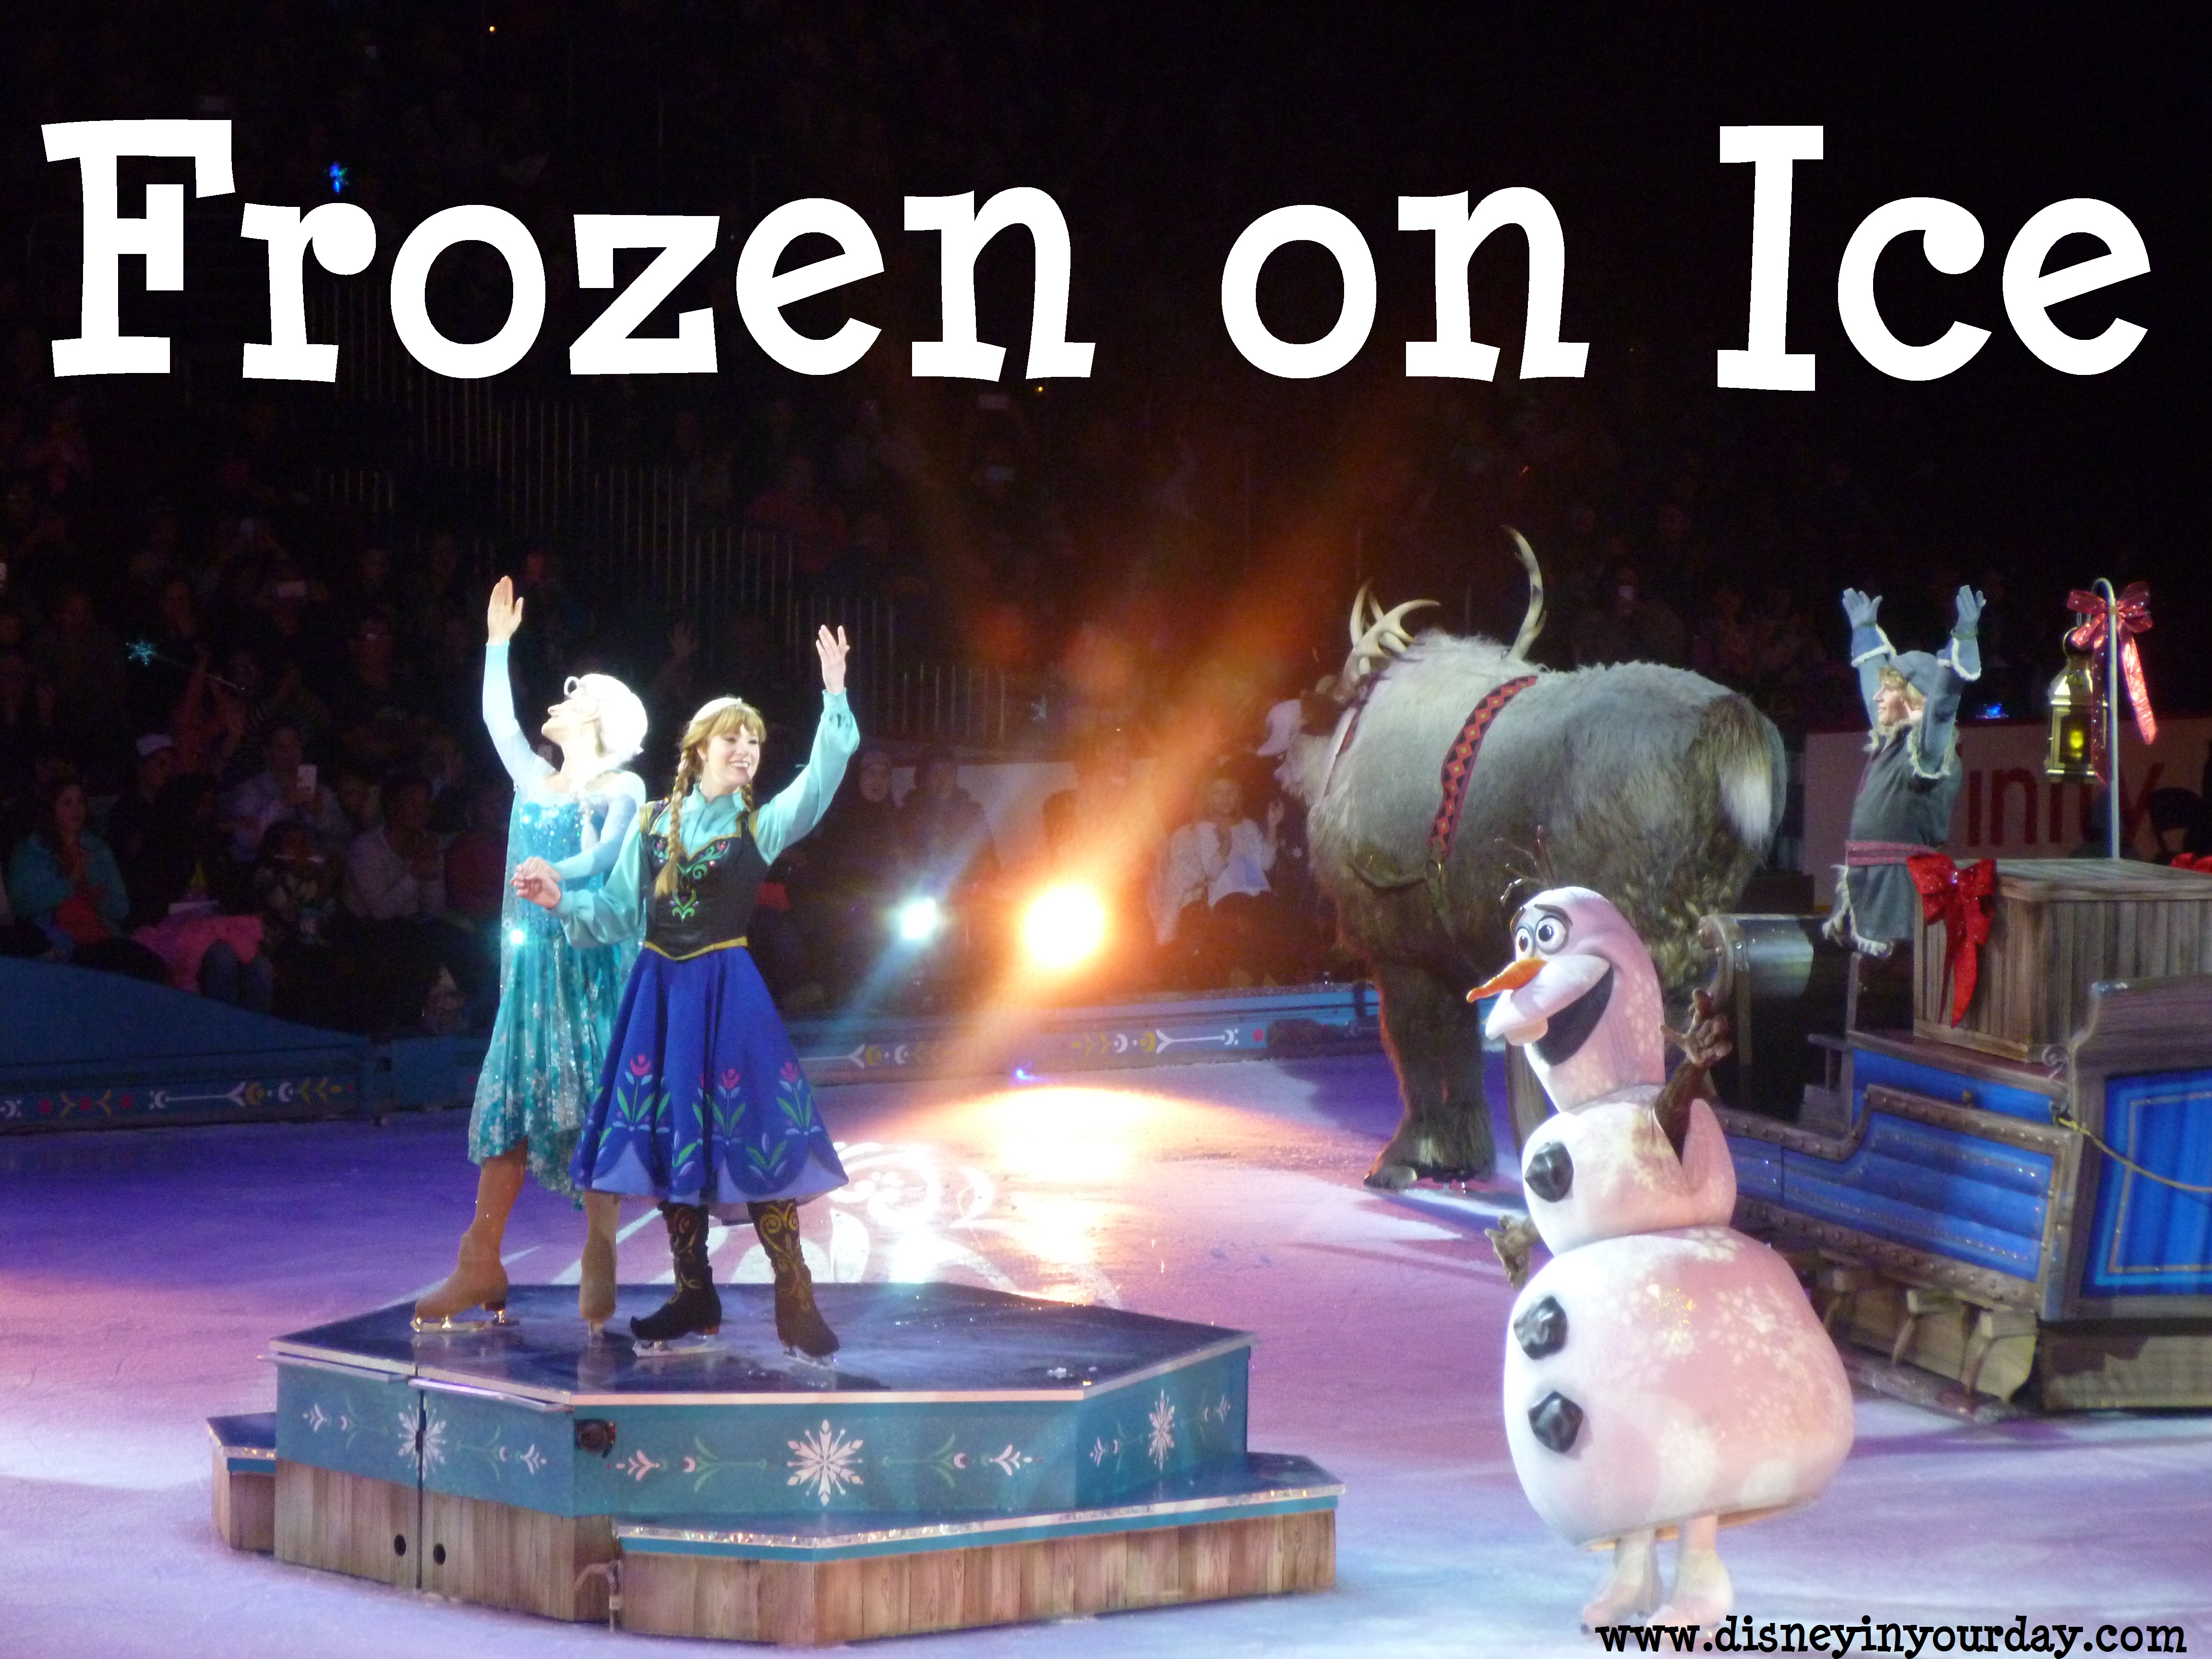 Frozen on Ice review - Disney in your Day